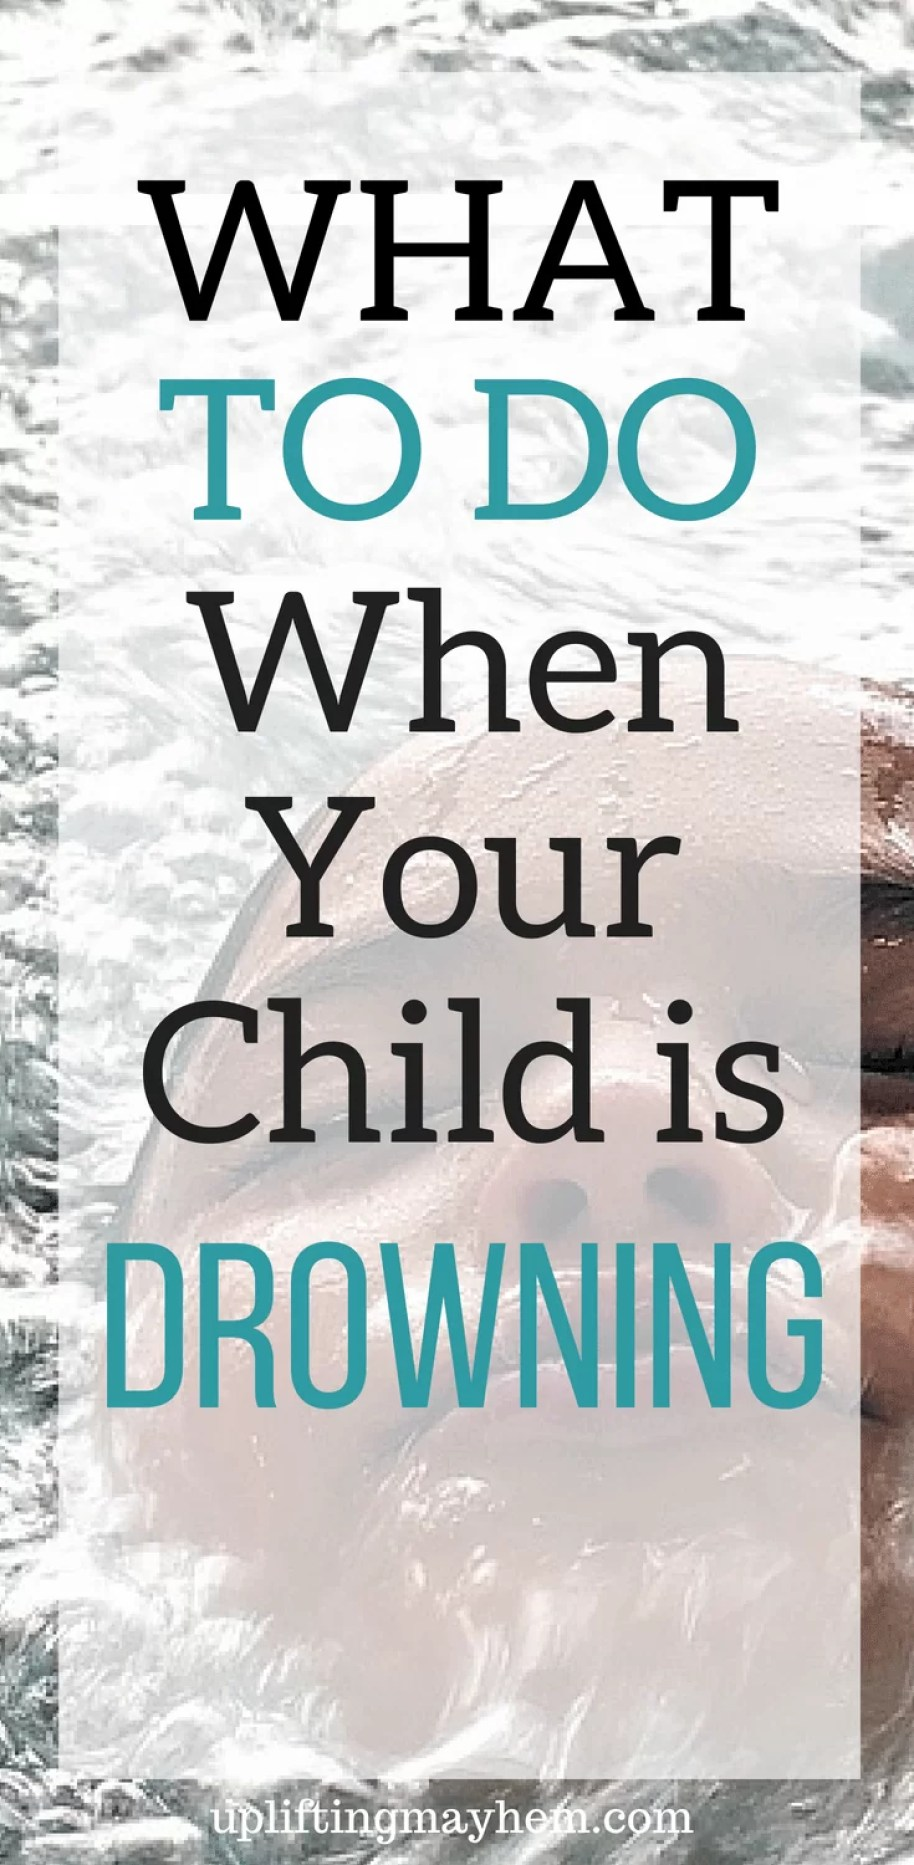 Prepare yourself to know what to do if your child is drowning! Lifesaving information!